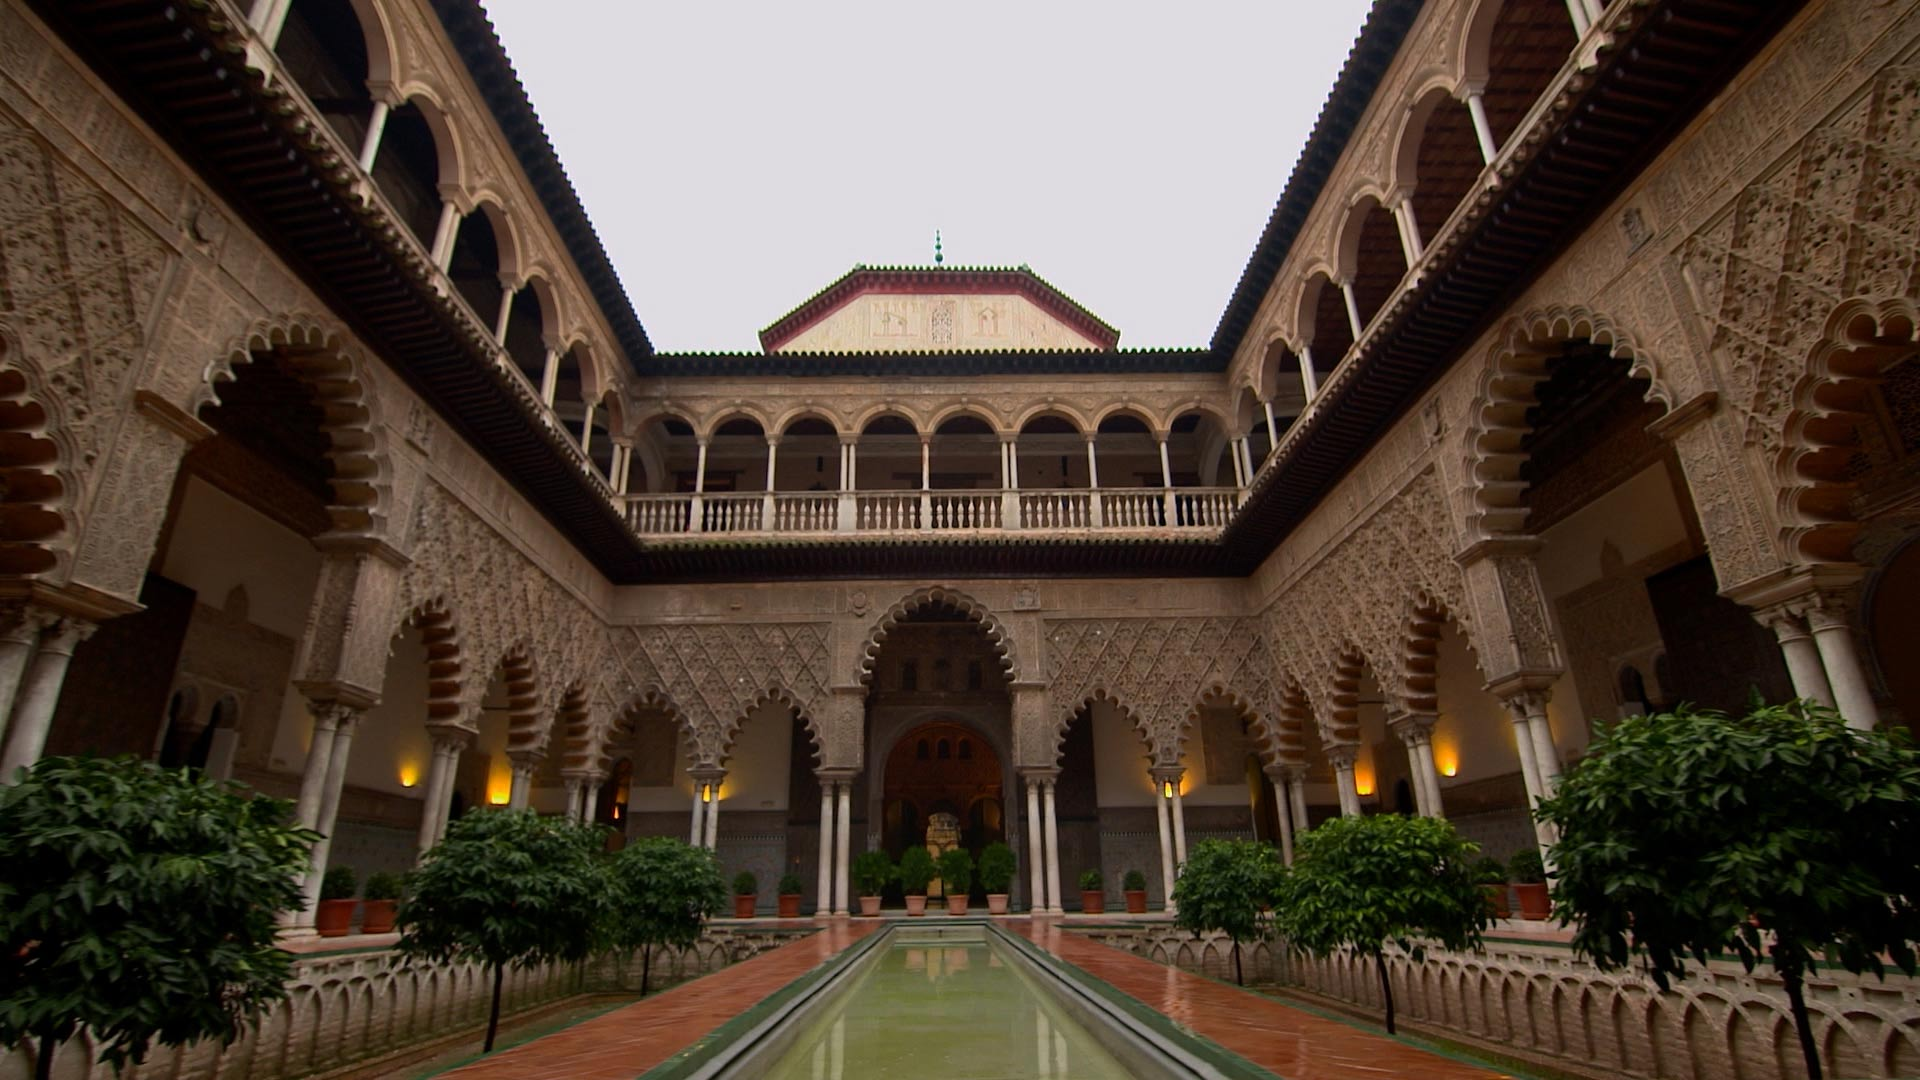 In the mid-14th century, Muhammad V sought asylum at the Alcazar in Seville, the home of Pedro I. The two men shared an appreciate for each other's architectural taste and accomplishments. After Muhammad returned to the Alhambra, he built the Court of the Lions which is highly influenced by Pedro's courtyard.